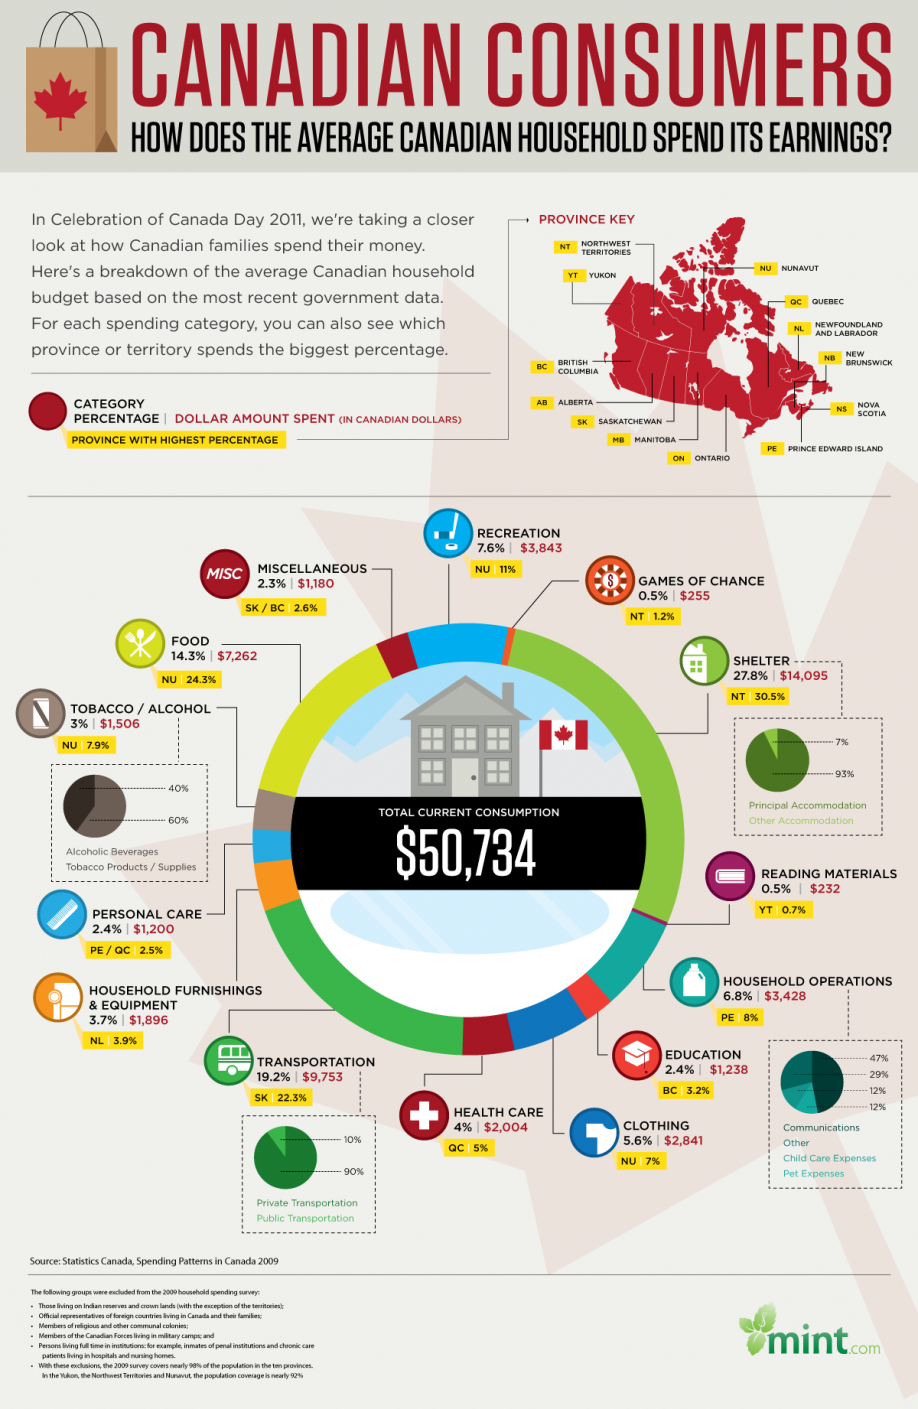 How Does The Average Canadian Household Spend Its Earnings?